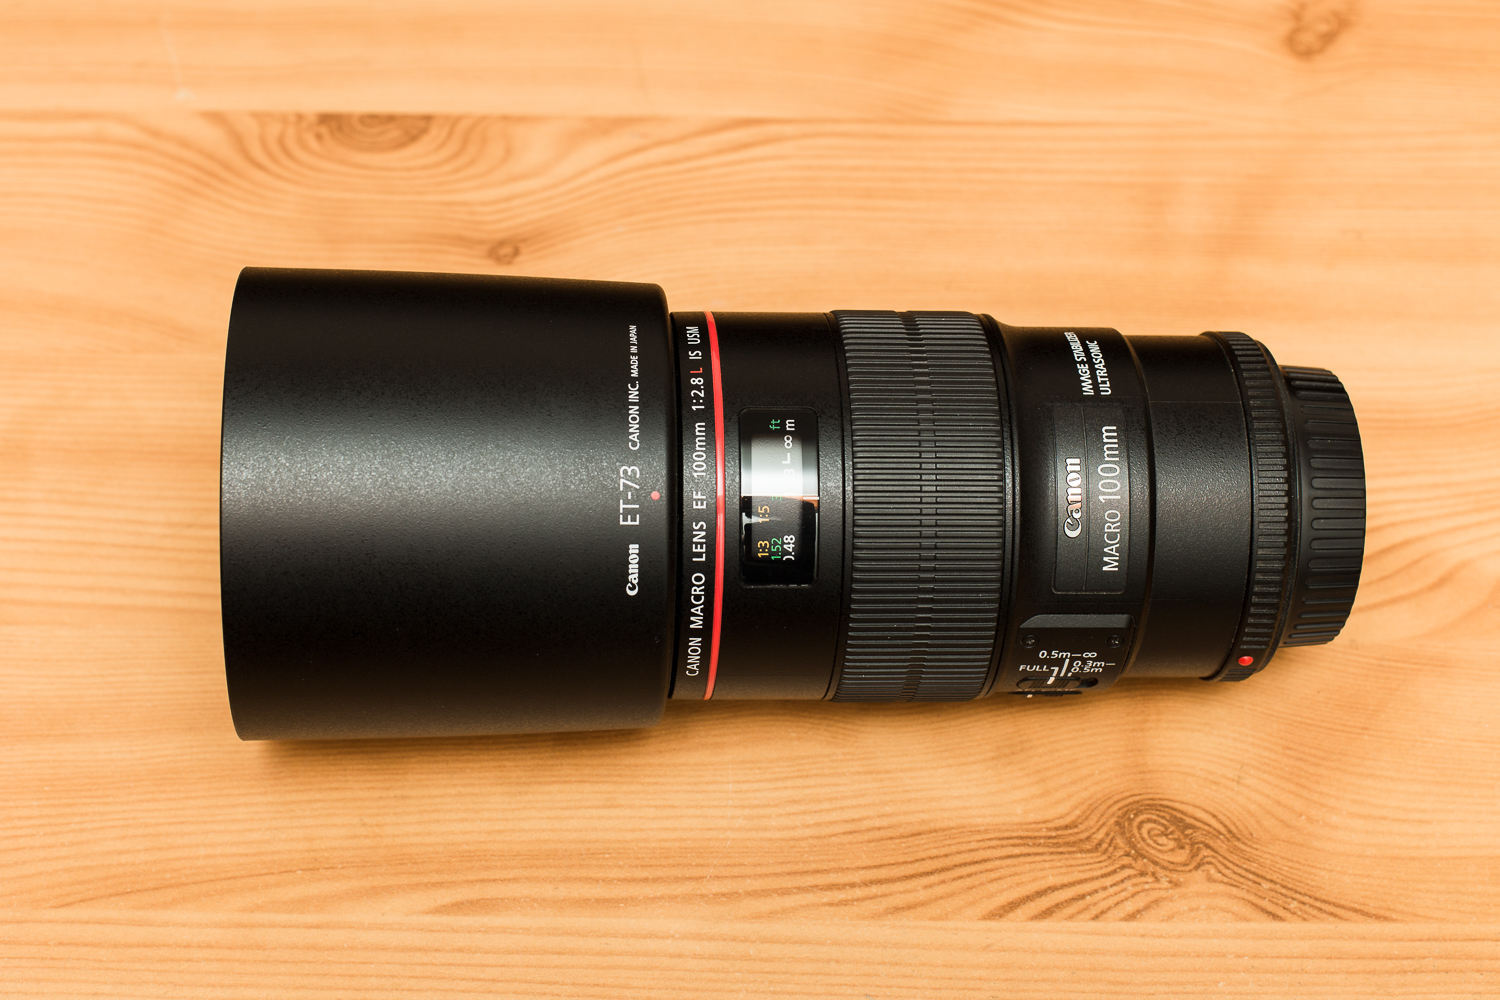 Canon 100 mm f/2.8 L IS Macro